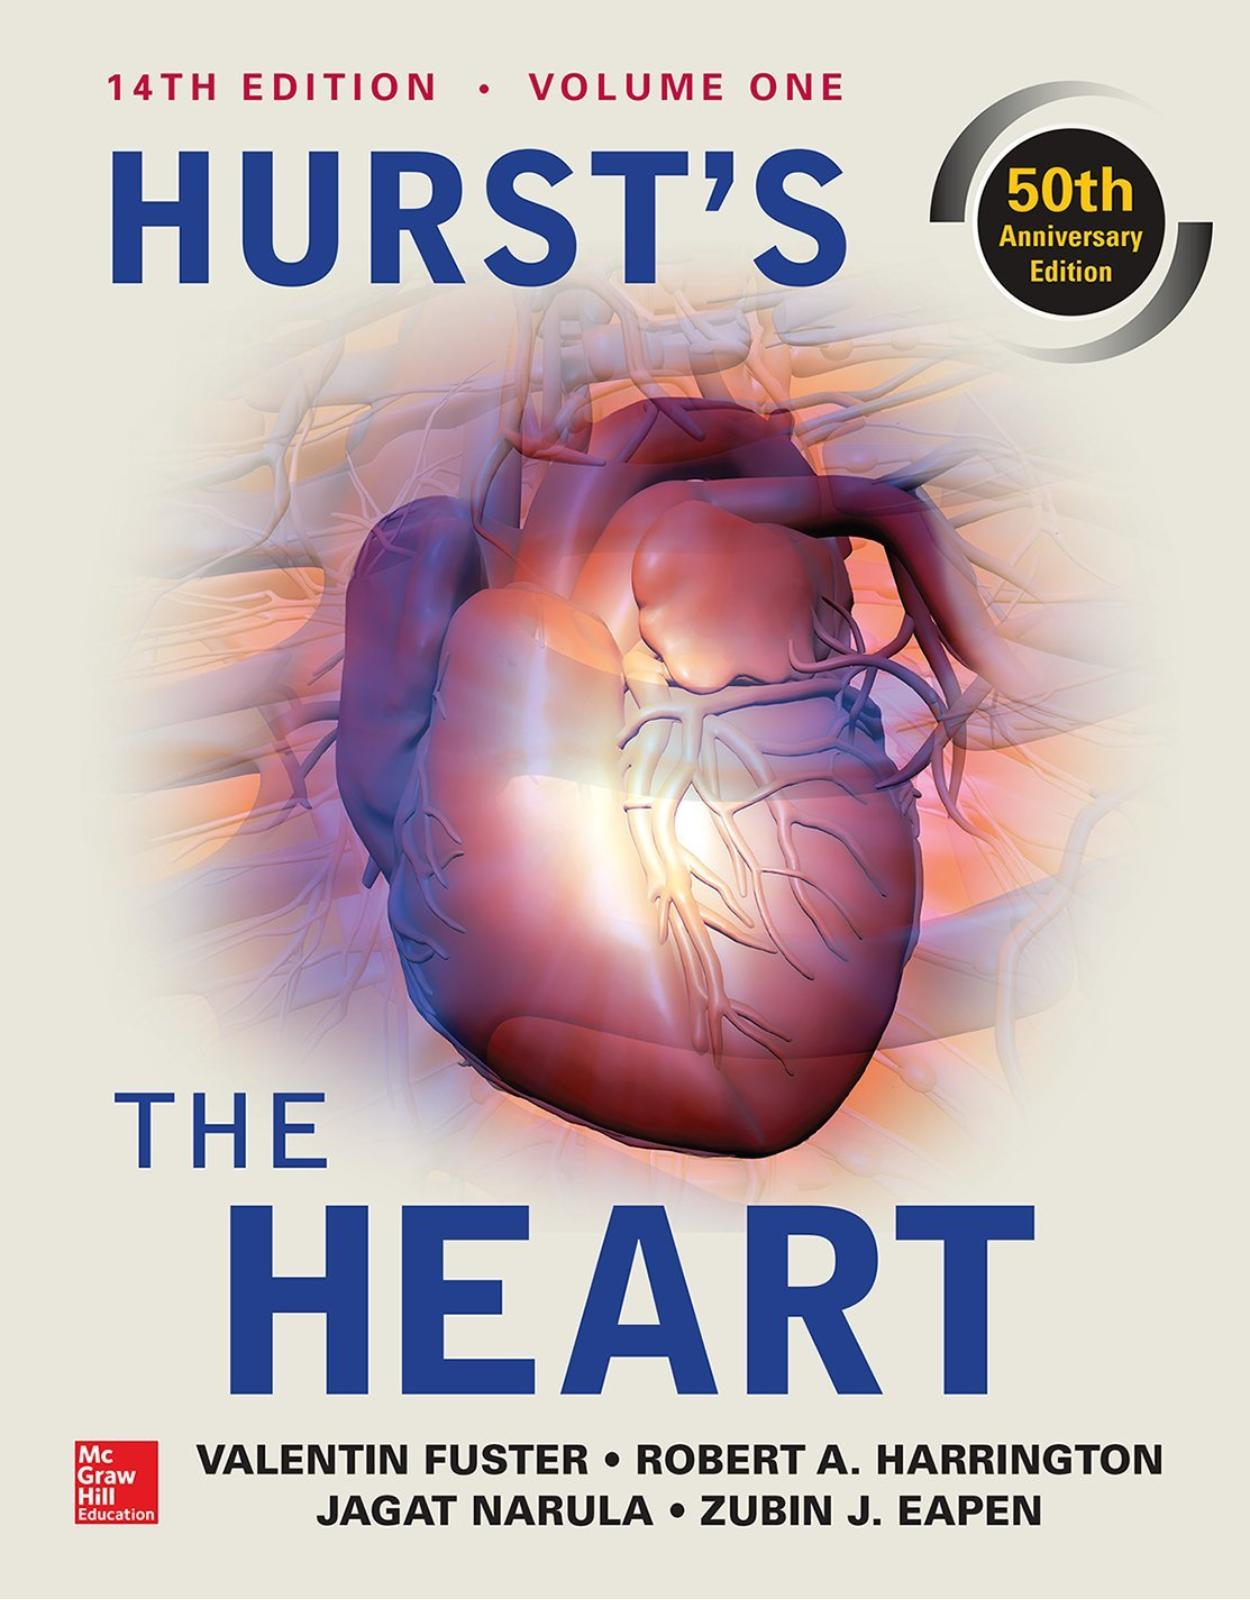 Hurst the Heart: Two Volume Set. 14th edition